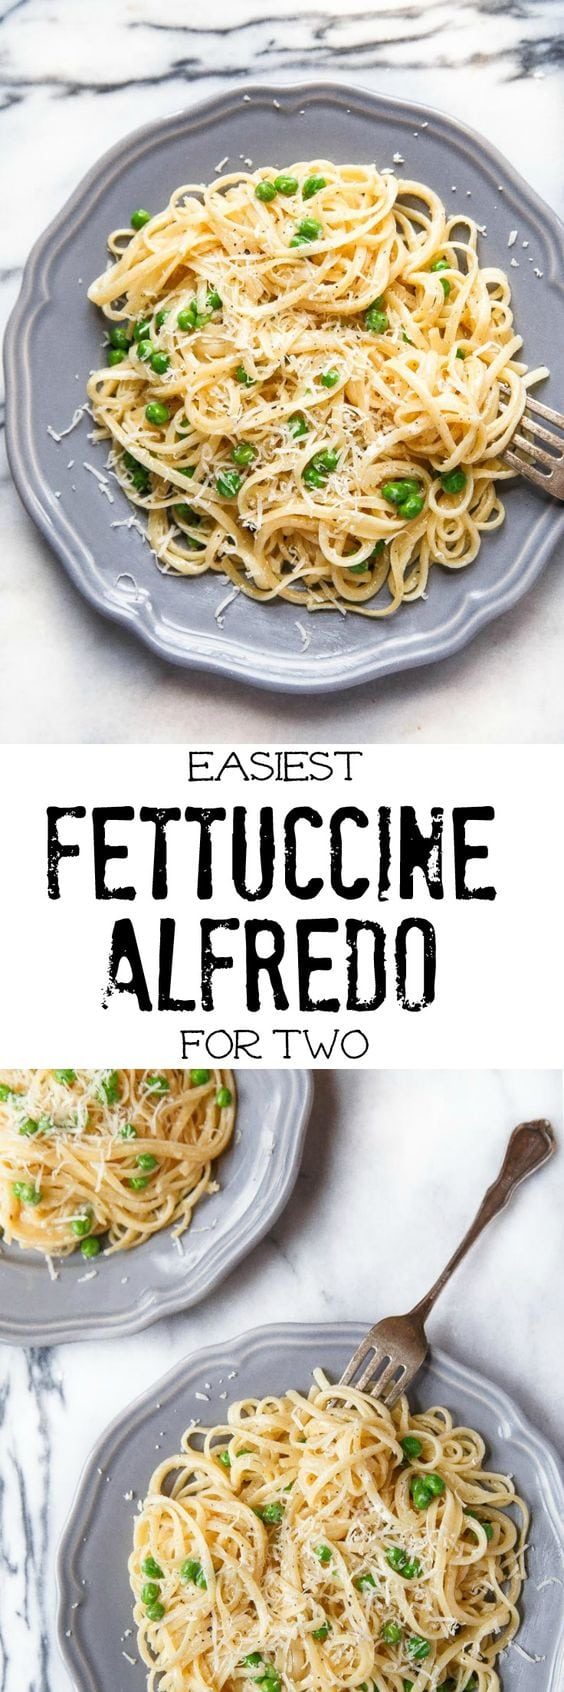 Easy fettuccine alfredo for two that you can make at home in just 20 minutes. Your next romantic dinner date night at home. #fettuccinealfredo #dinnerfortwo #romanticdinner #mealsfortwo #cookingfortwo #datenightdinners #datenightmeals #pasta #alfredo #alfredosauce